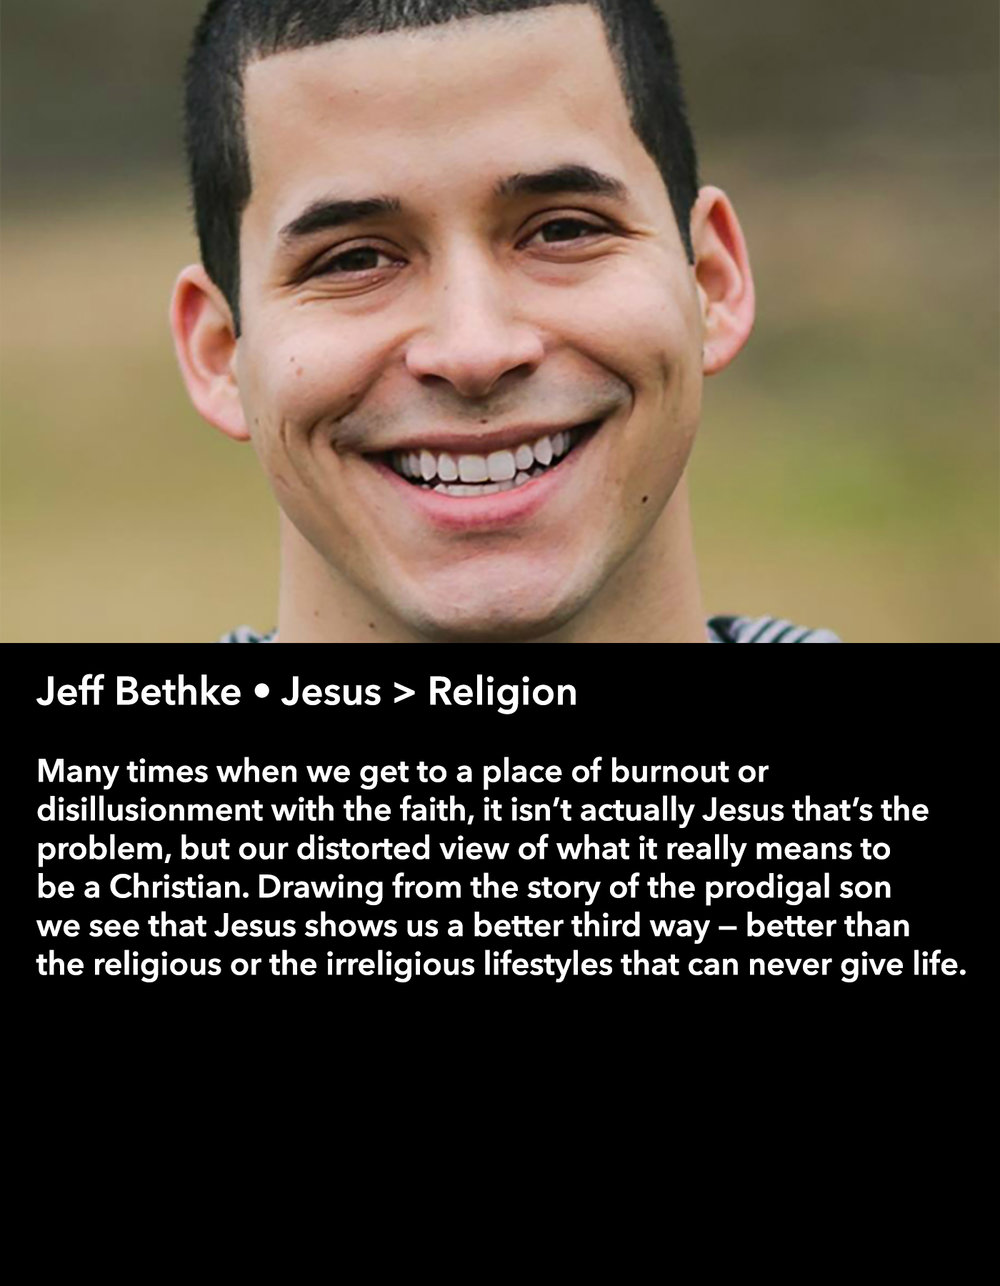 Jeff Bethke • Jesus > Religion • Thursday Night, March 16 • 8:30 pm – 9:45 pm